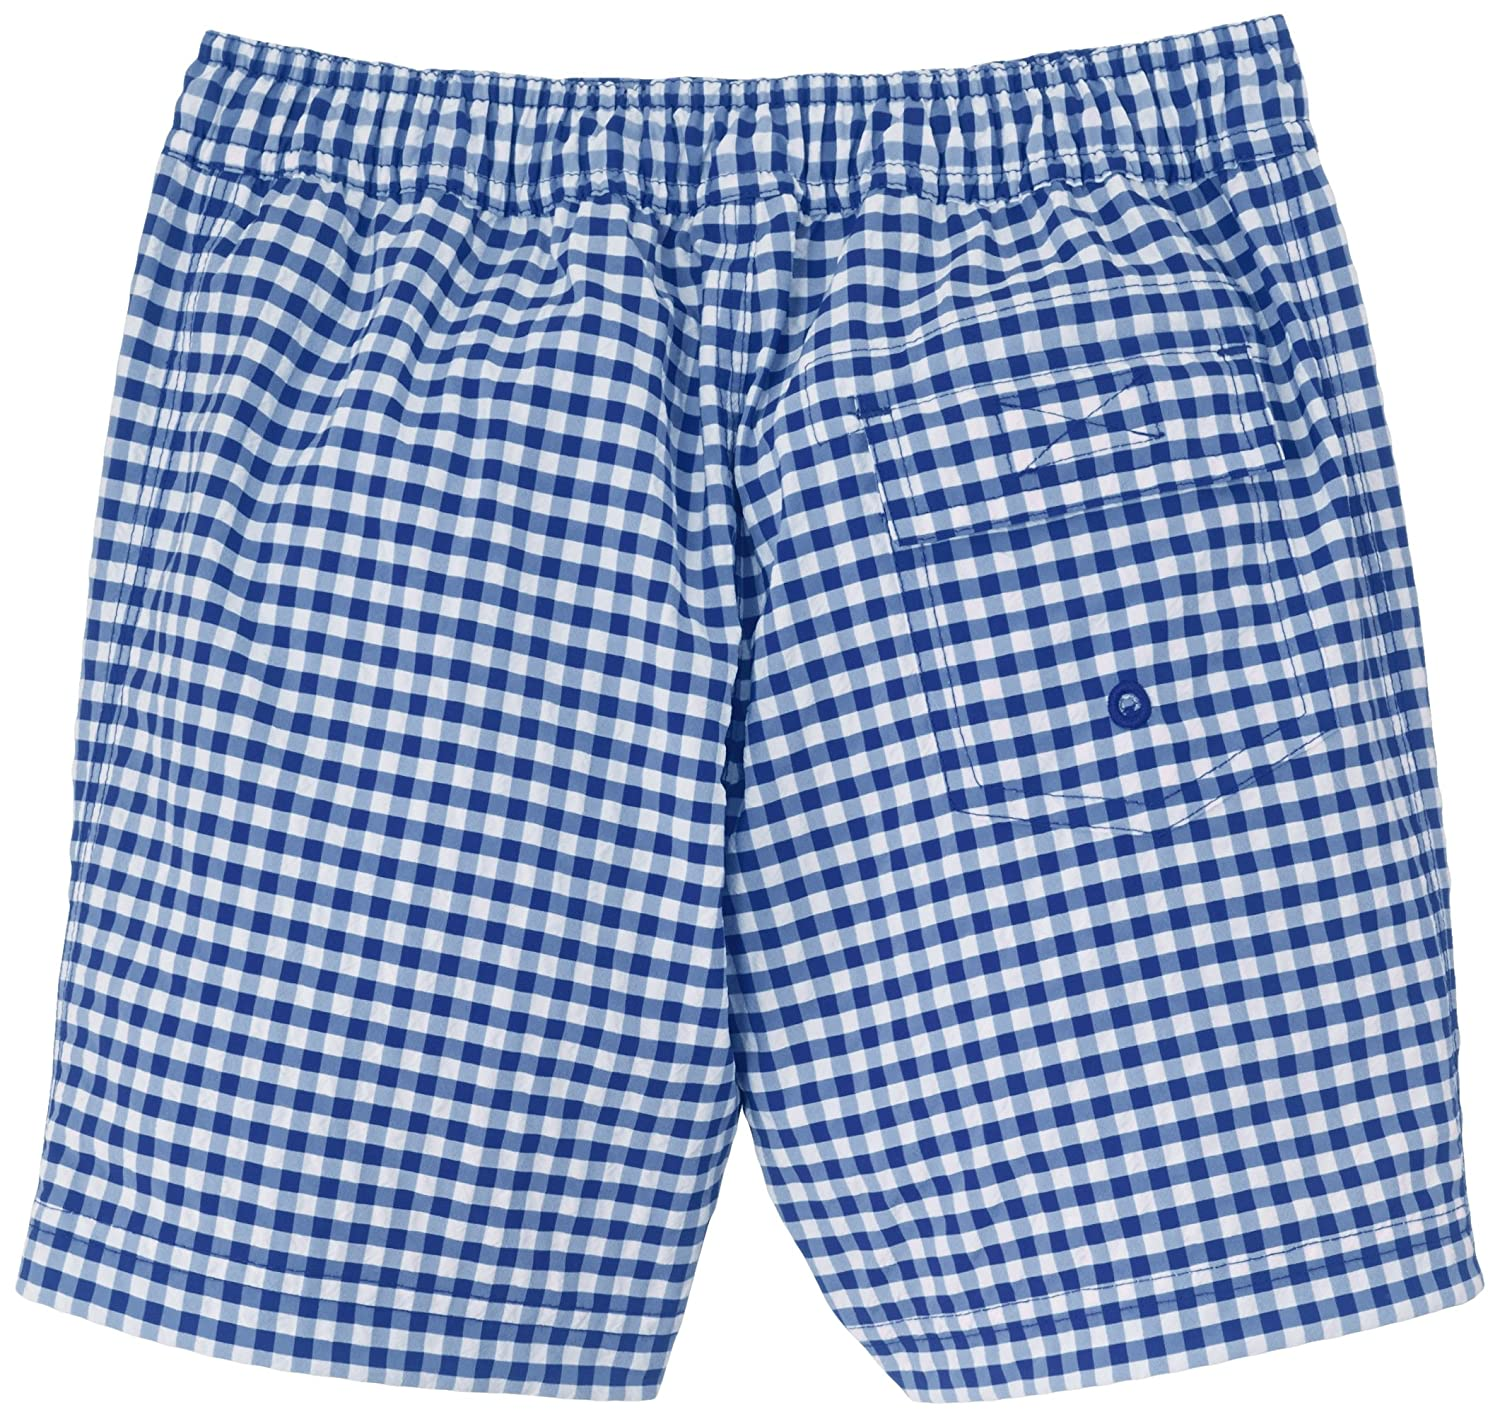 Blue//White-5 Years Petit Bateau Check Swim Shorts Toddler Kids